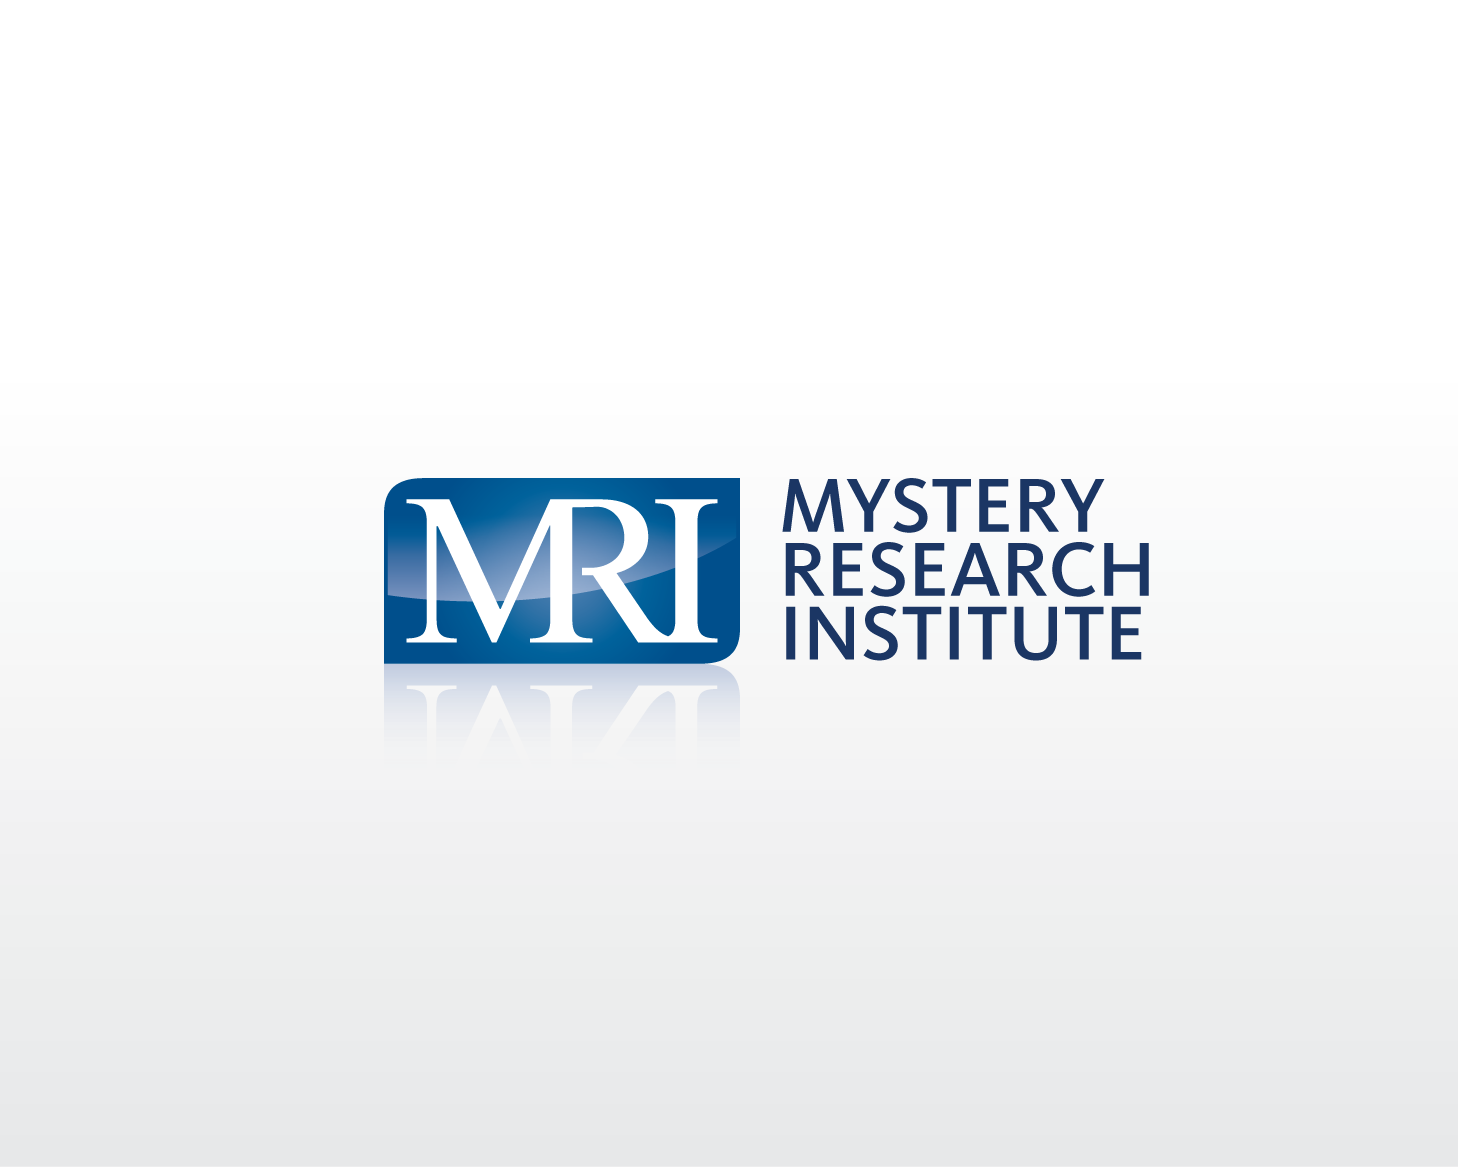 New logo wanted for Mystery Research Institute